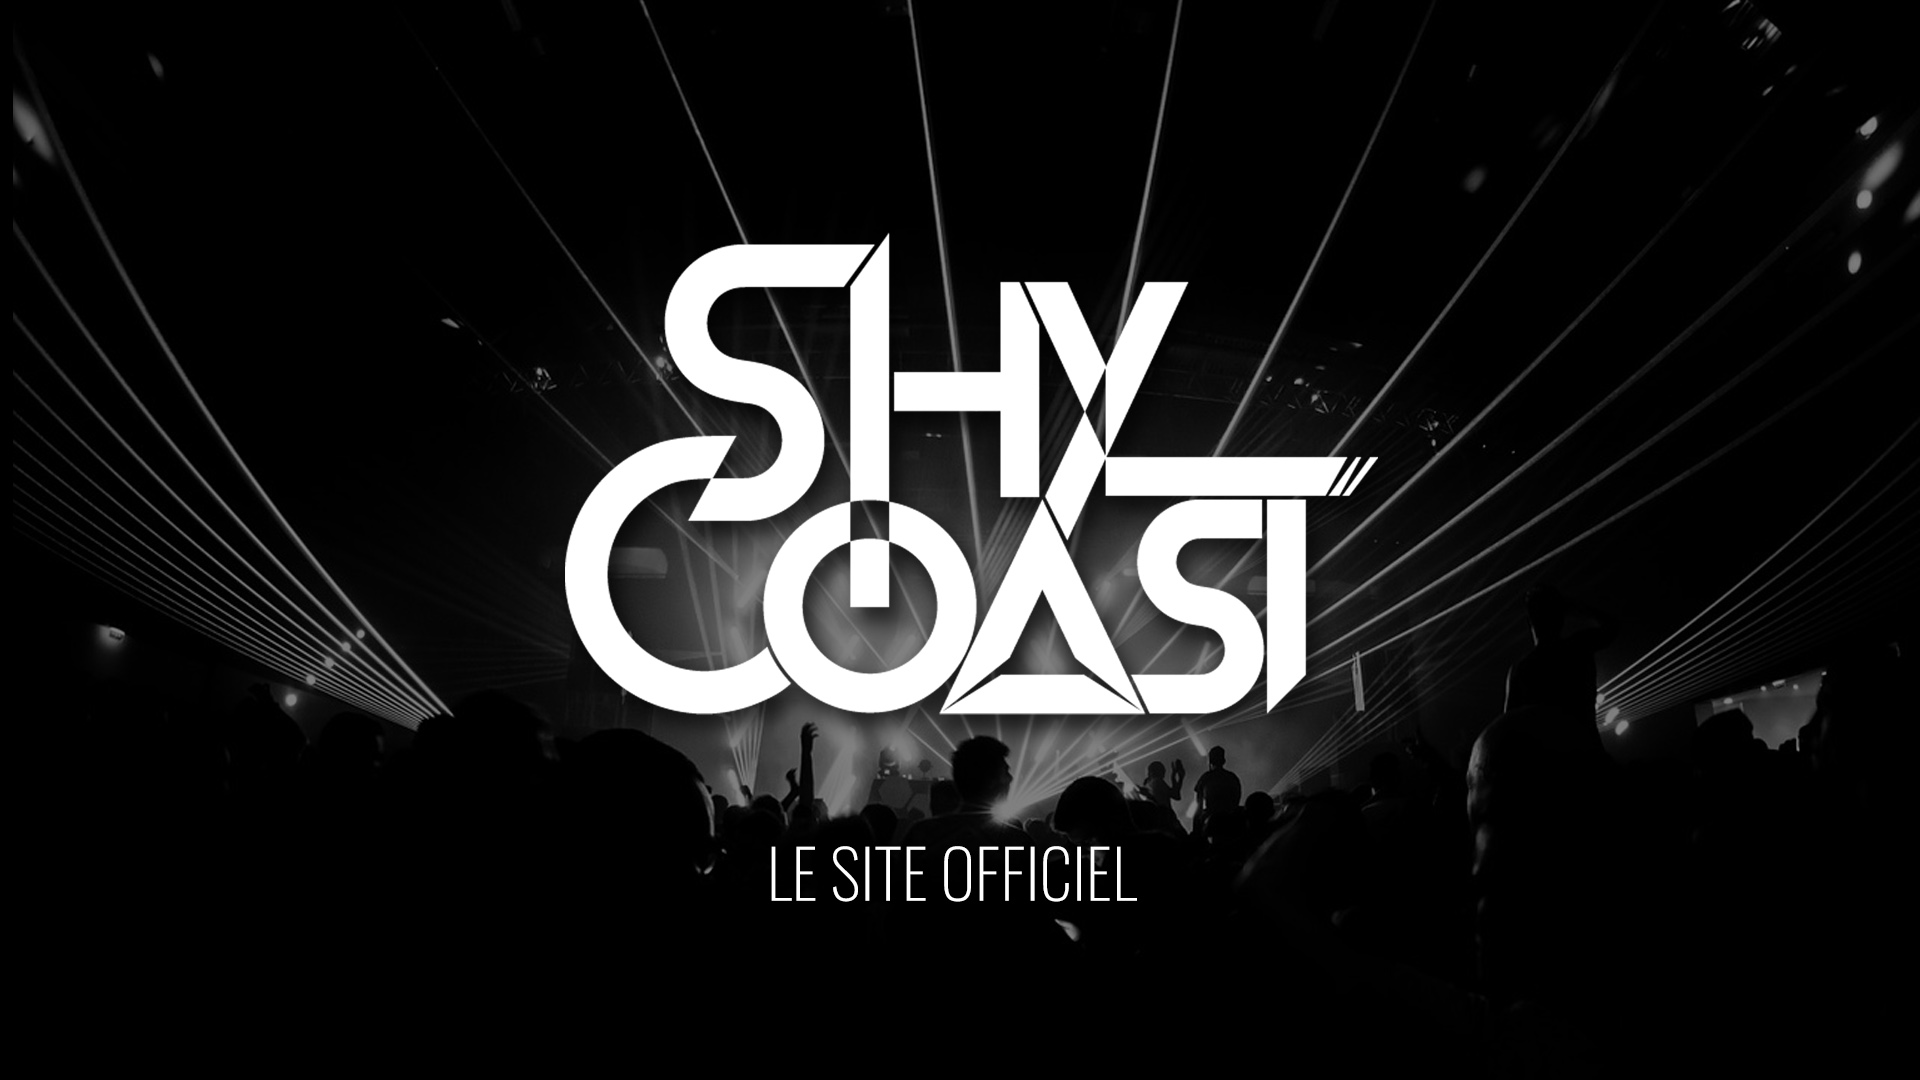 Shy-Coast DJ France Bordeaux